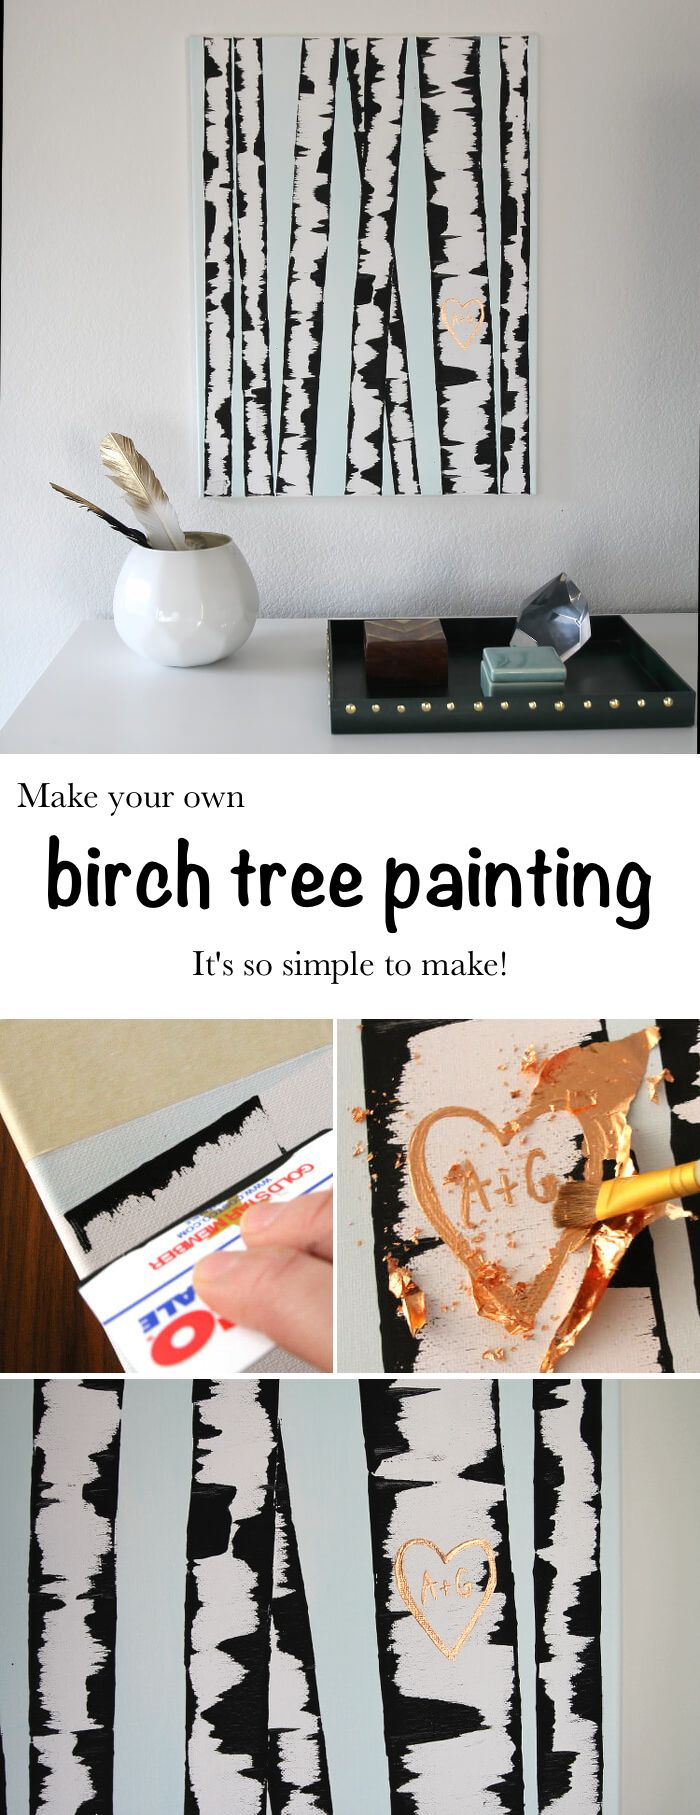 19 Simple DIY Wall Art Ideas For Your Home